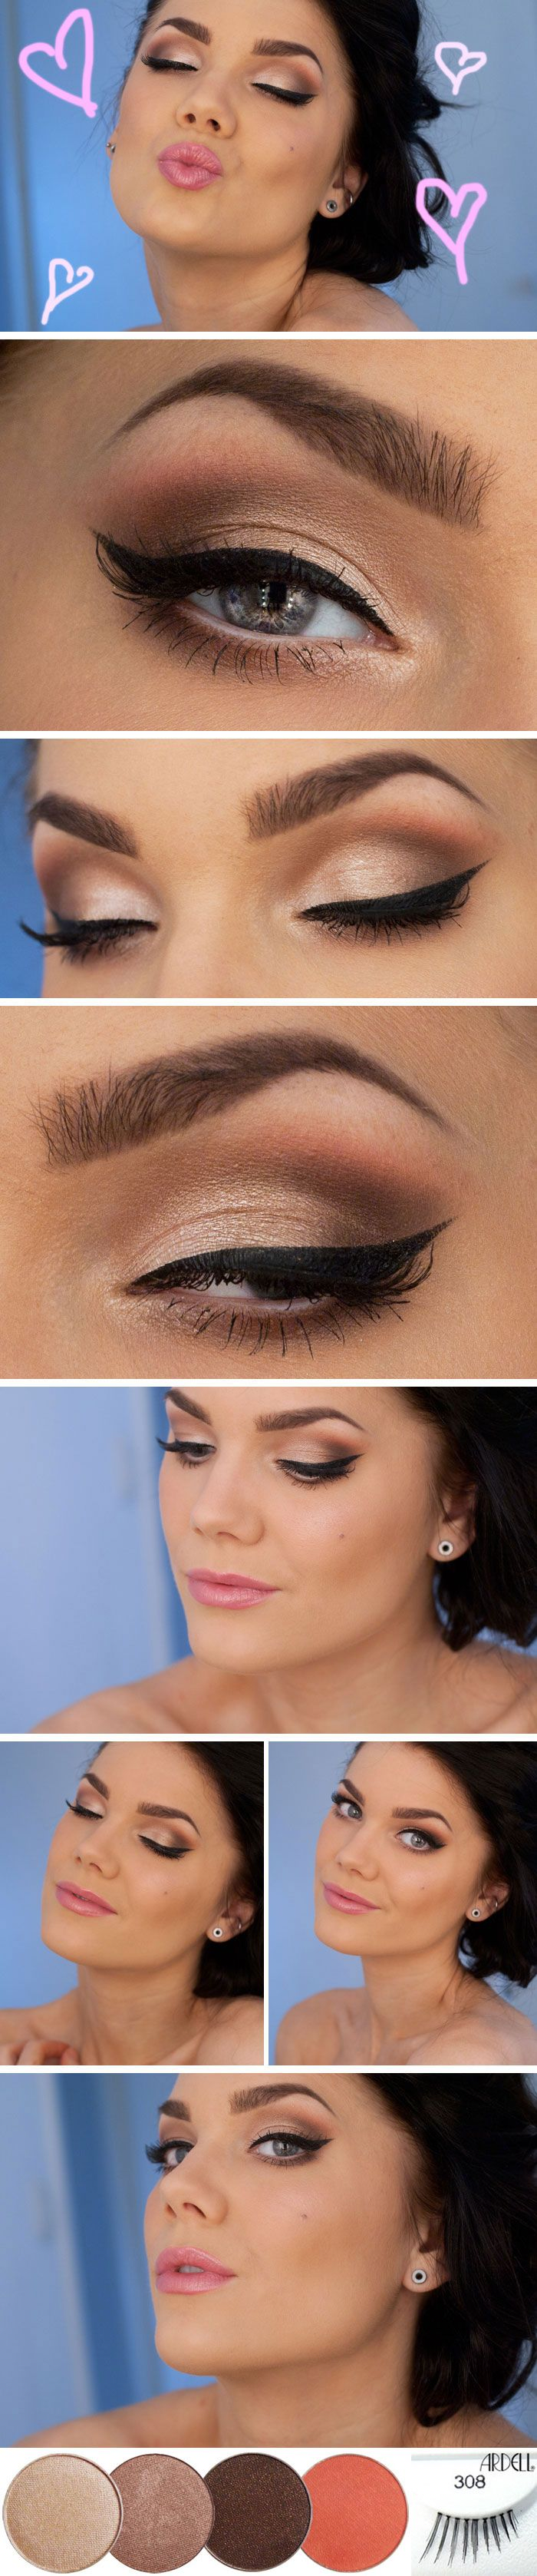 #Valentine's day #Makeup Tutorial http://pinmakeuptips.com/valentines-day-makeup-tutorial/